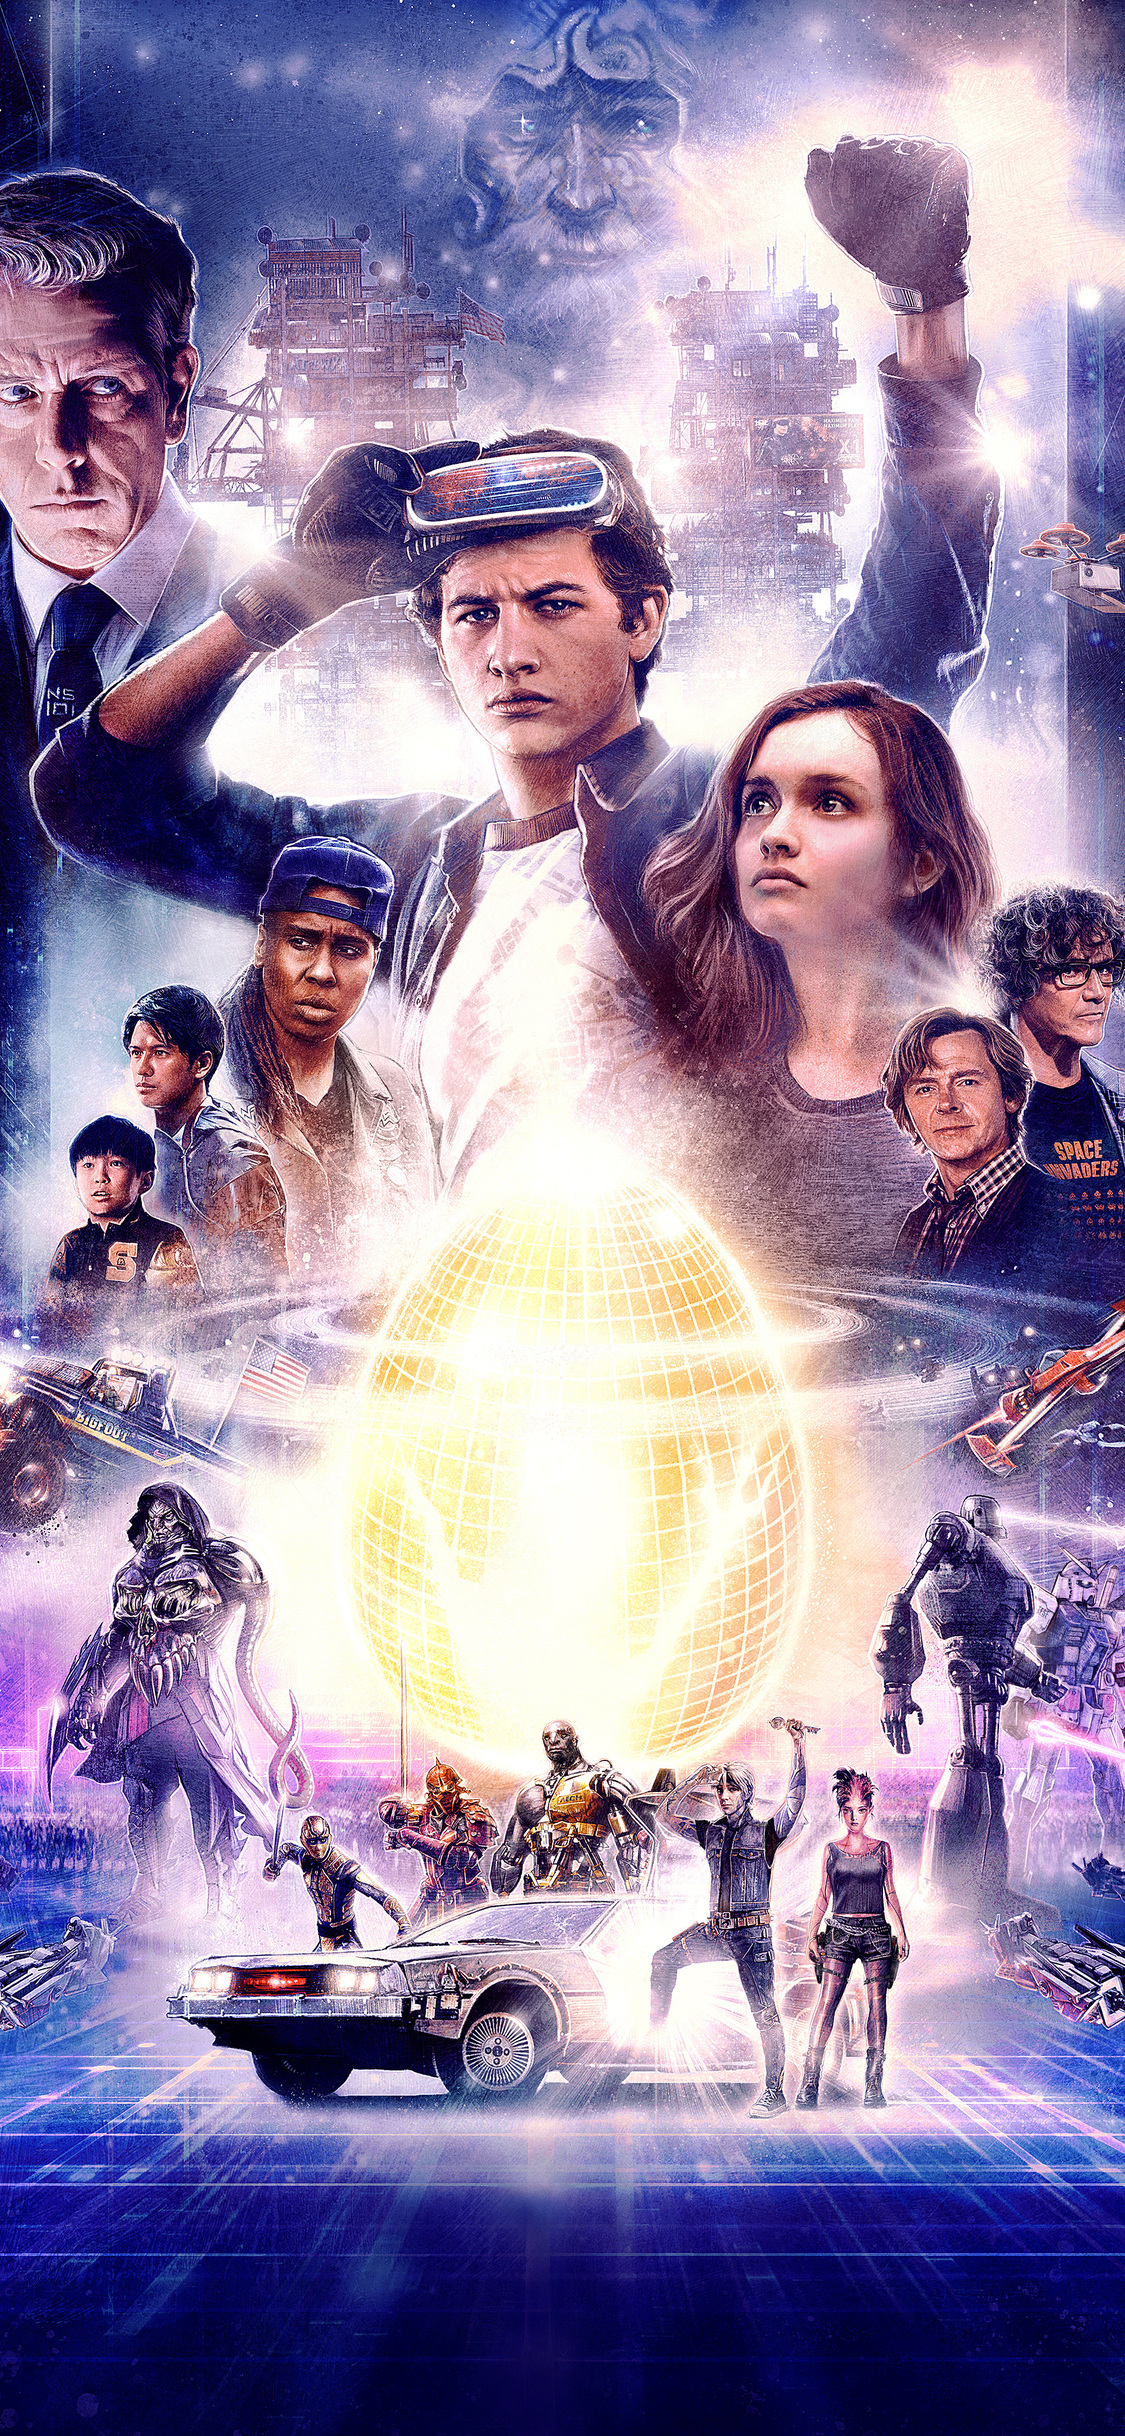 1125x2436 Ready Player One 2018 Movie Artwork Iphone XS,Iphone 10,Iphone X HD 4k Wallpapers